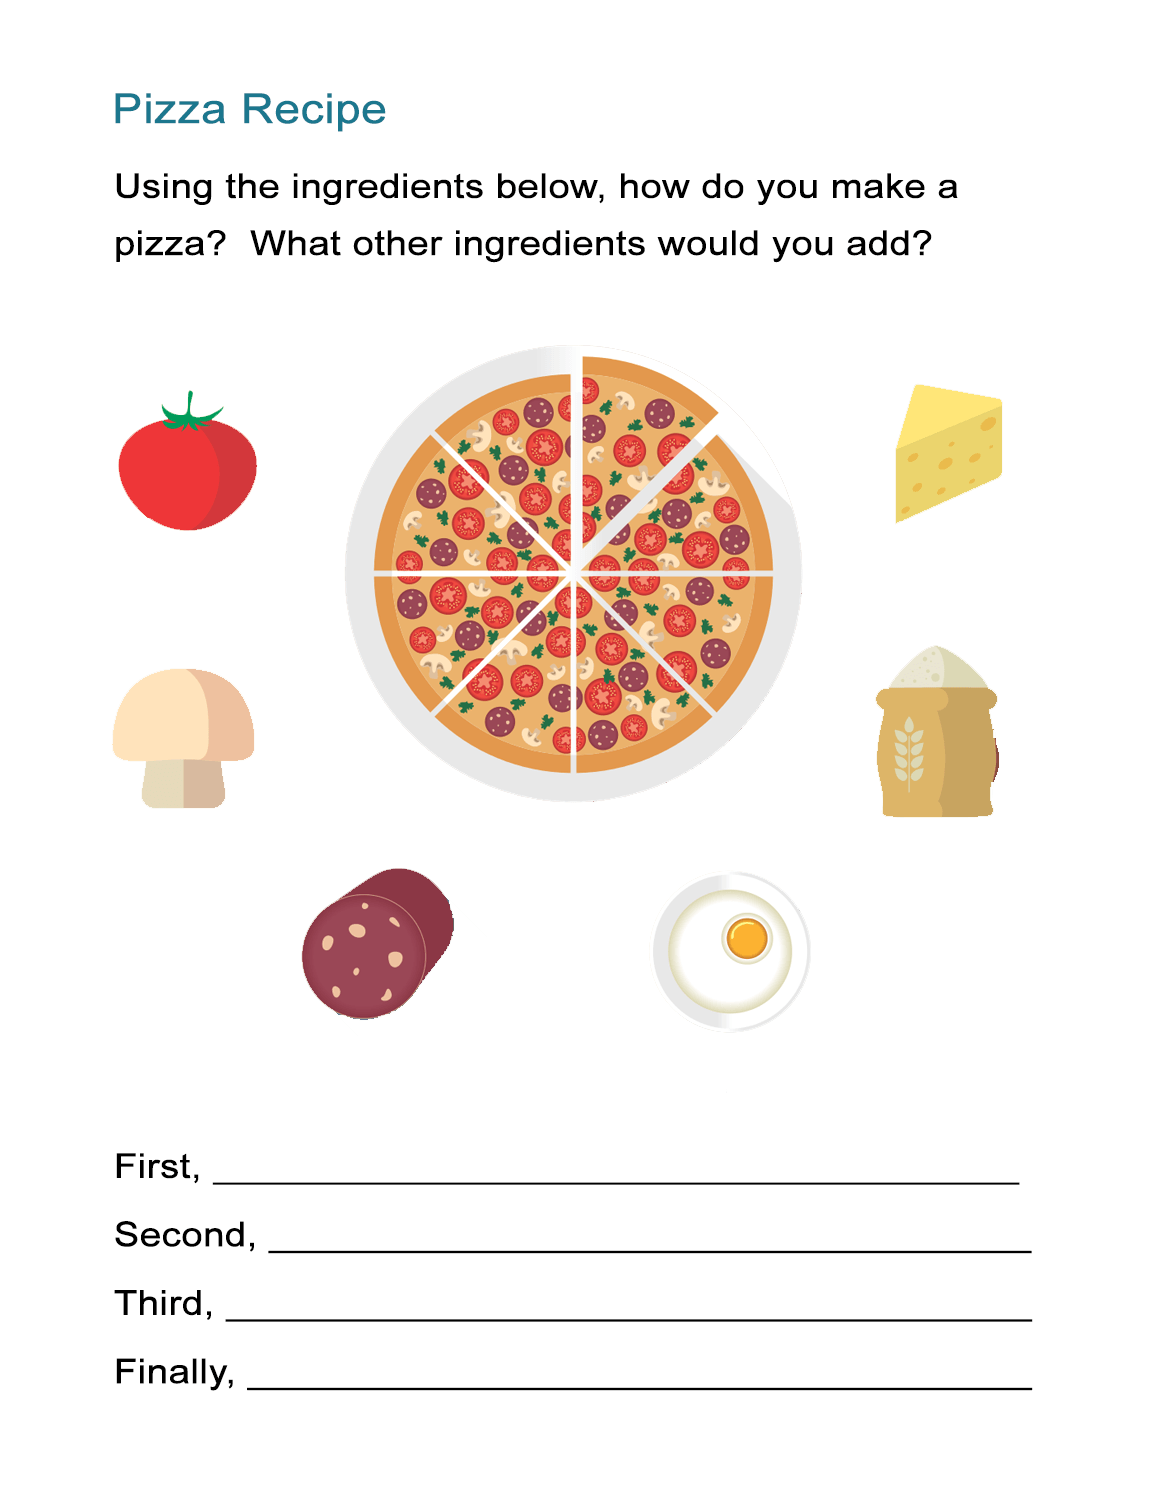 Transition Words Worksheet The Pizza Recipe Cooking